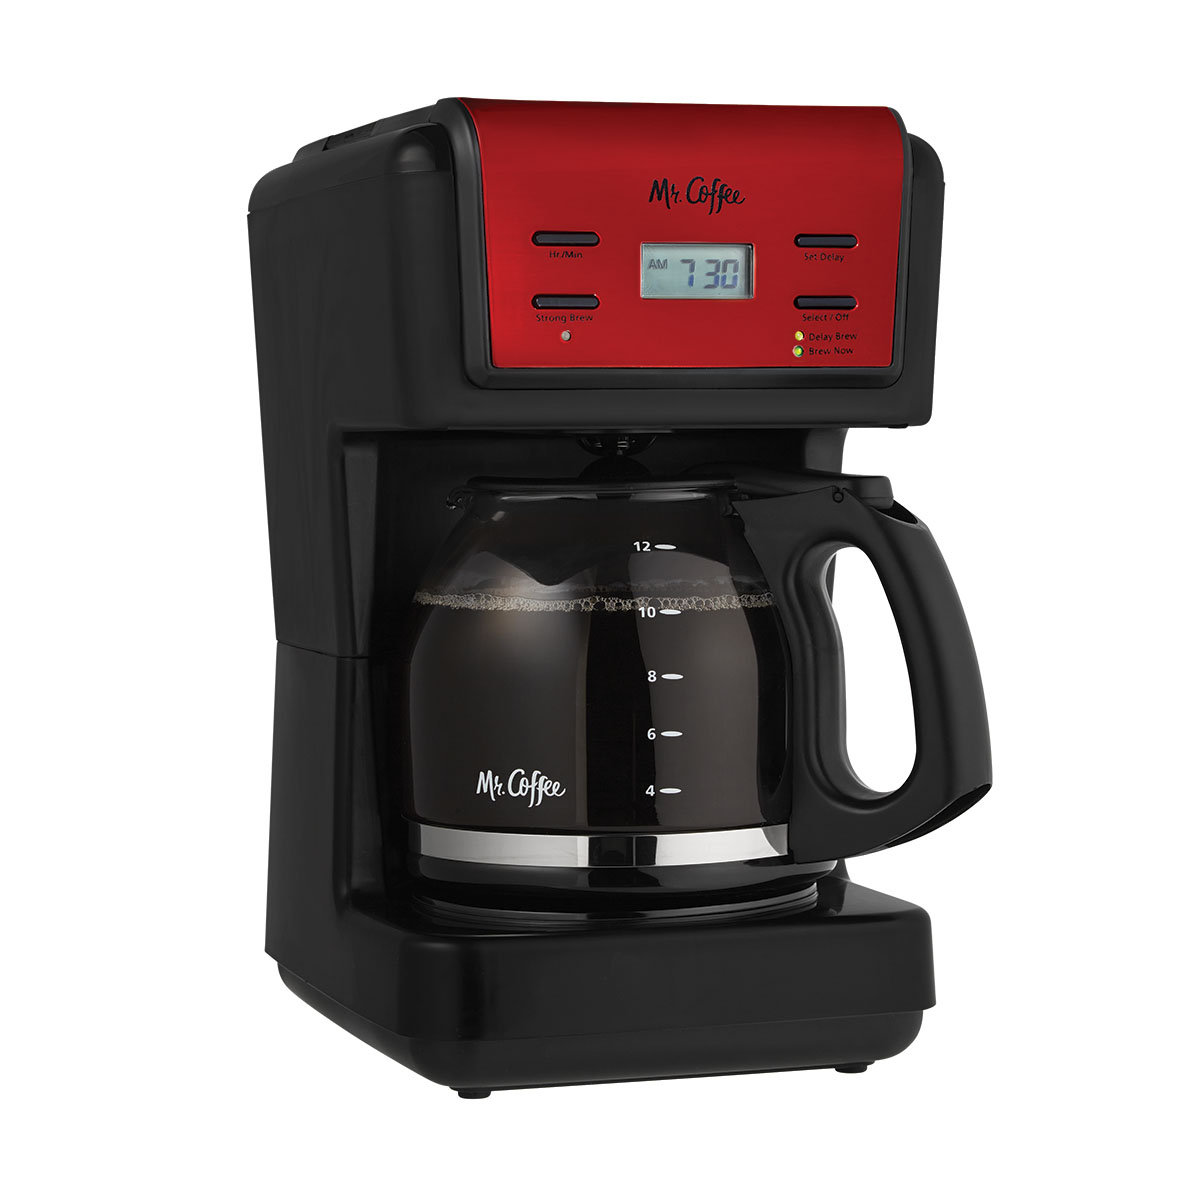 Mr. Coffee 12-Cup Programmable Coffee Maker, Red (BVMC-KNX26)